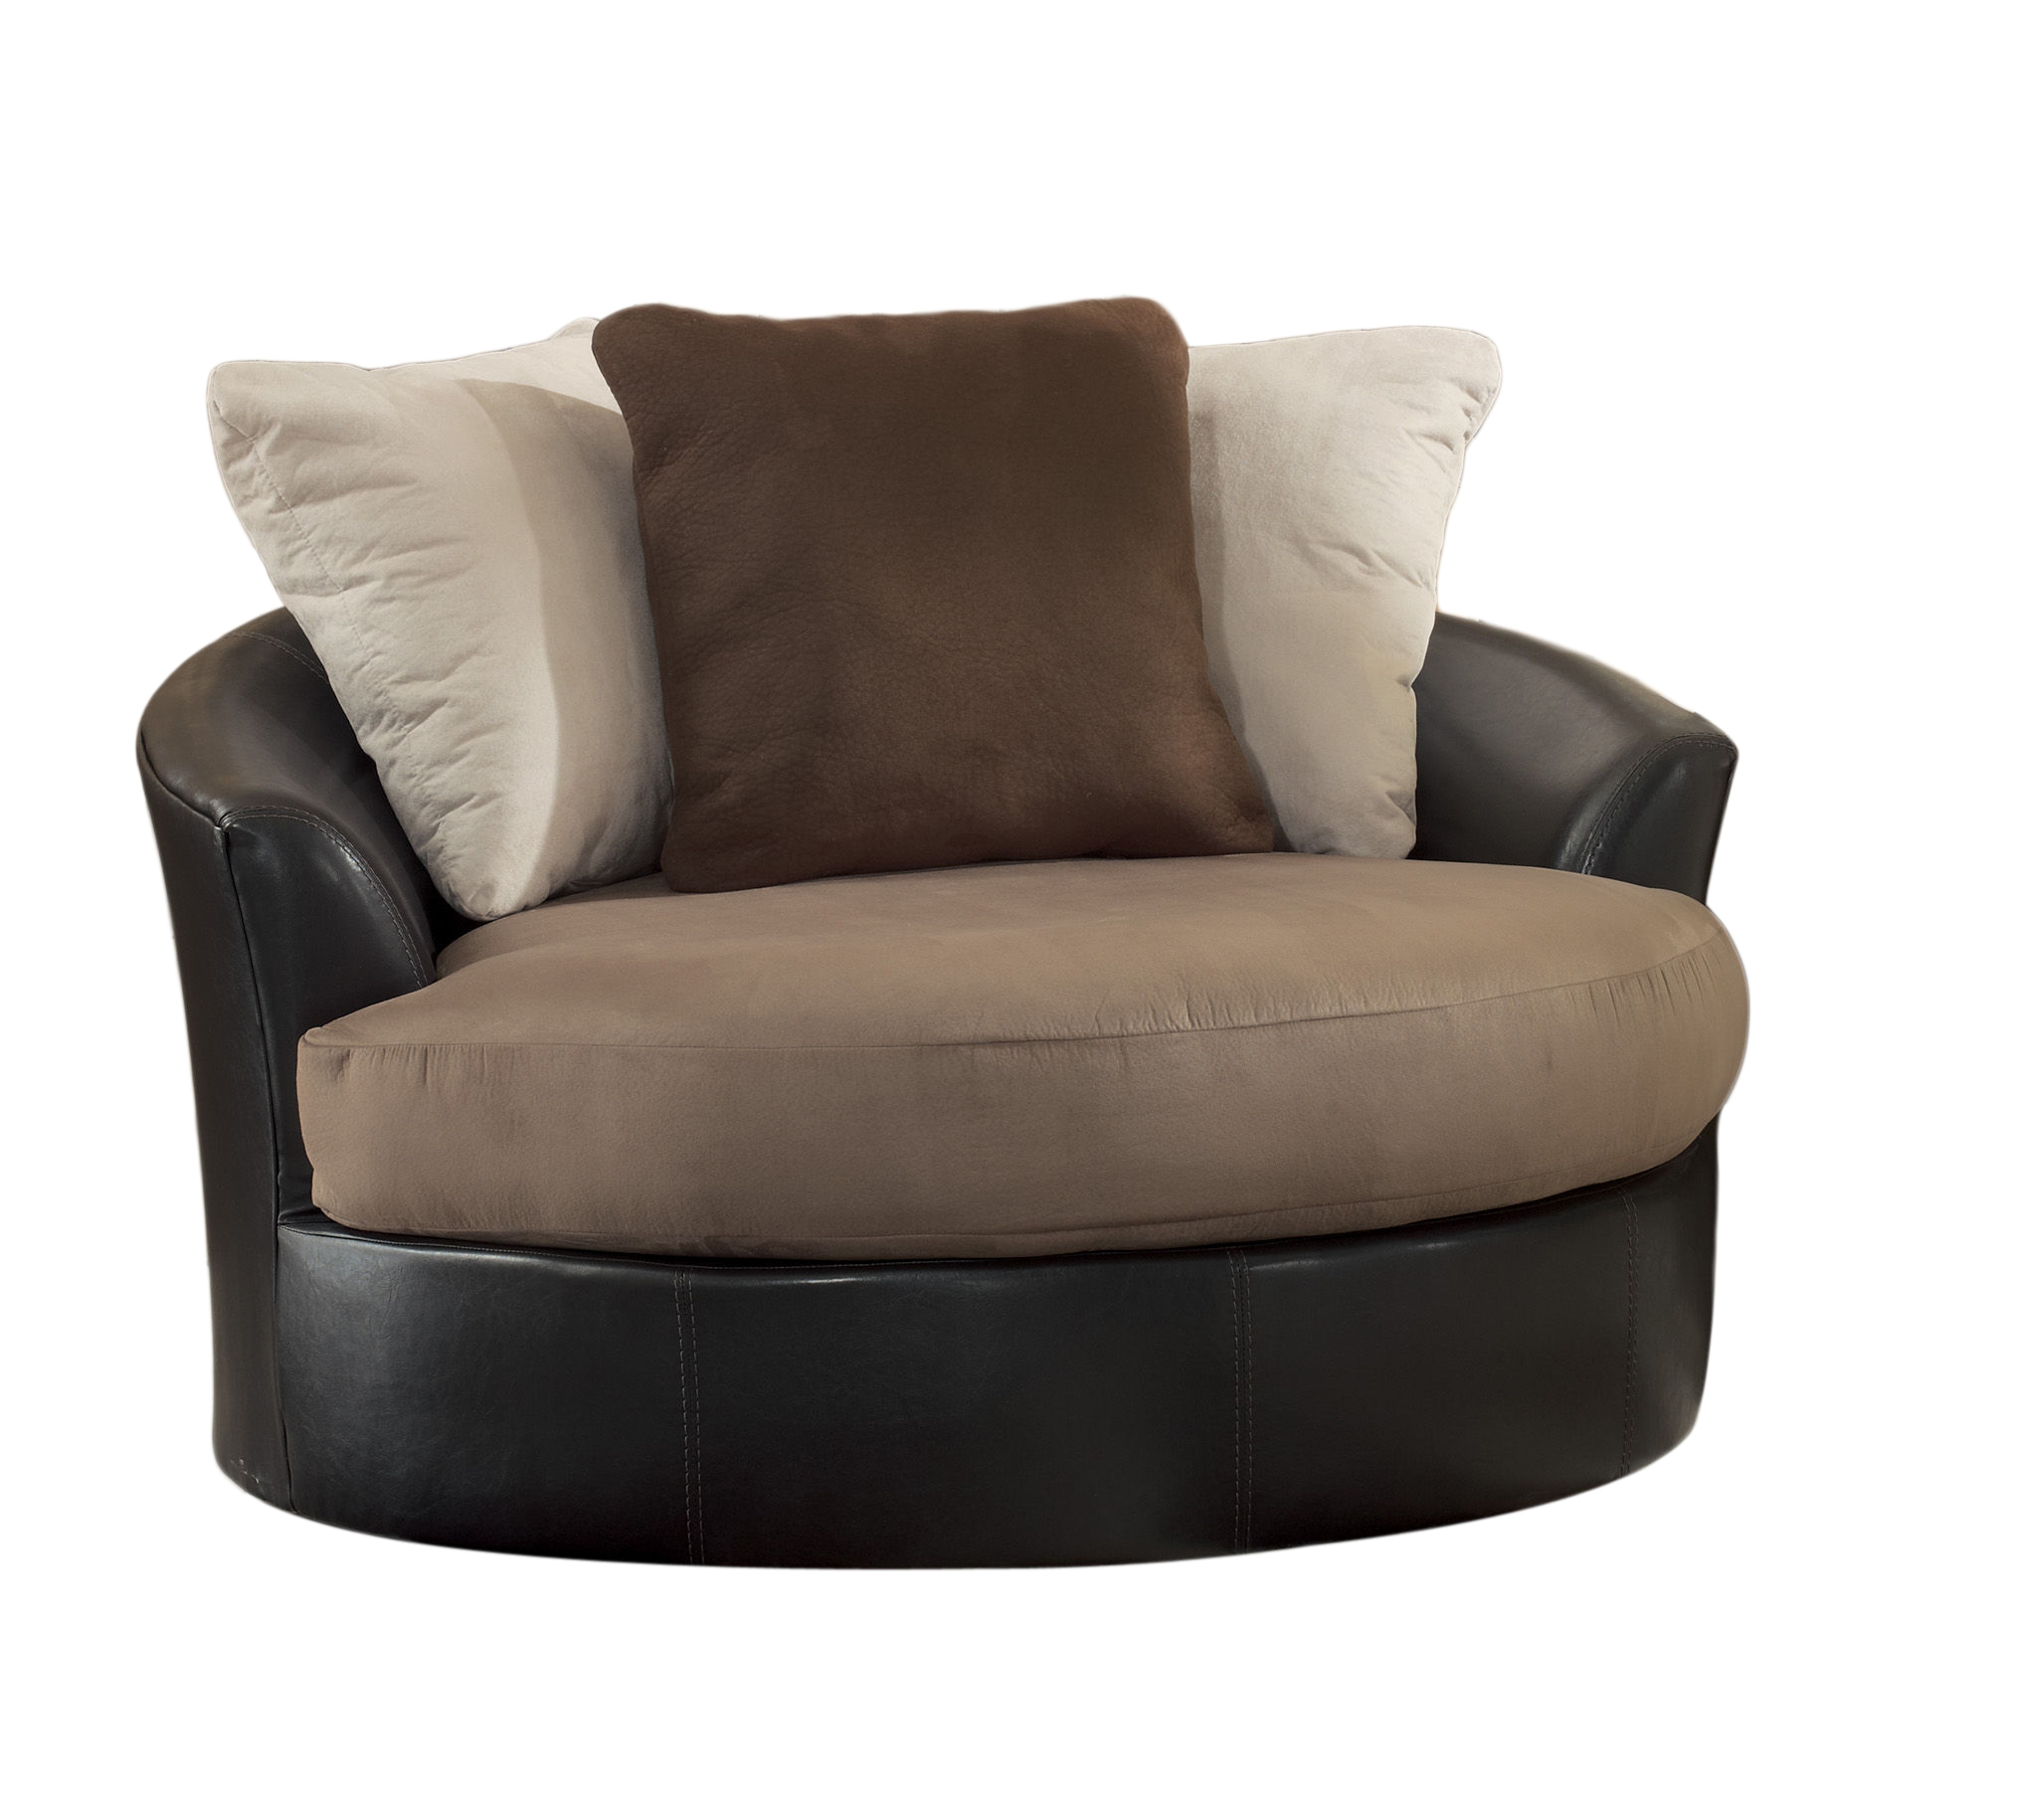 Charmant ... Oversized Swivel Accent Chair Click To Enlarge ...